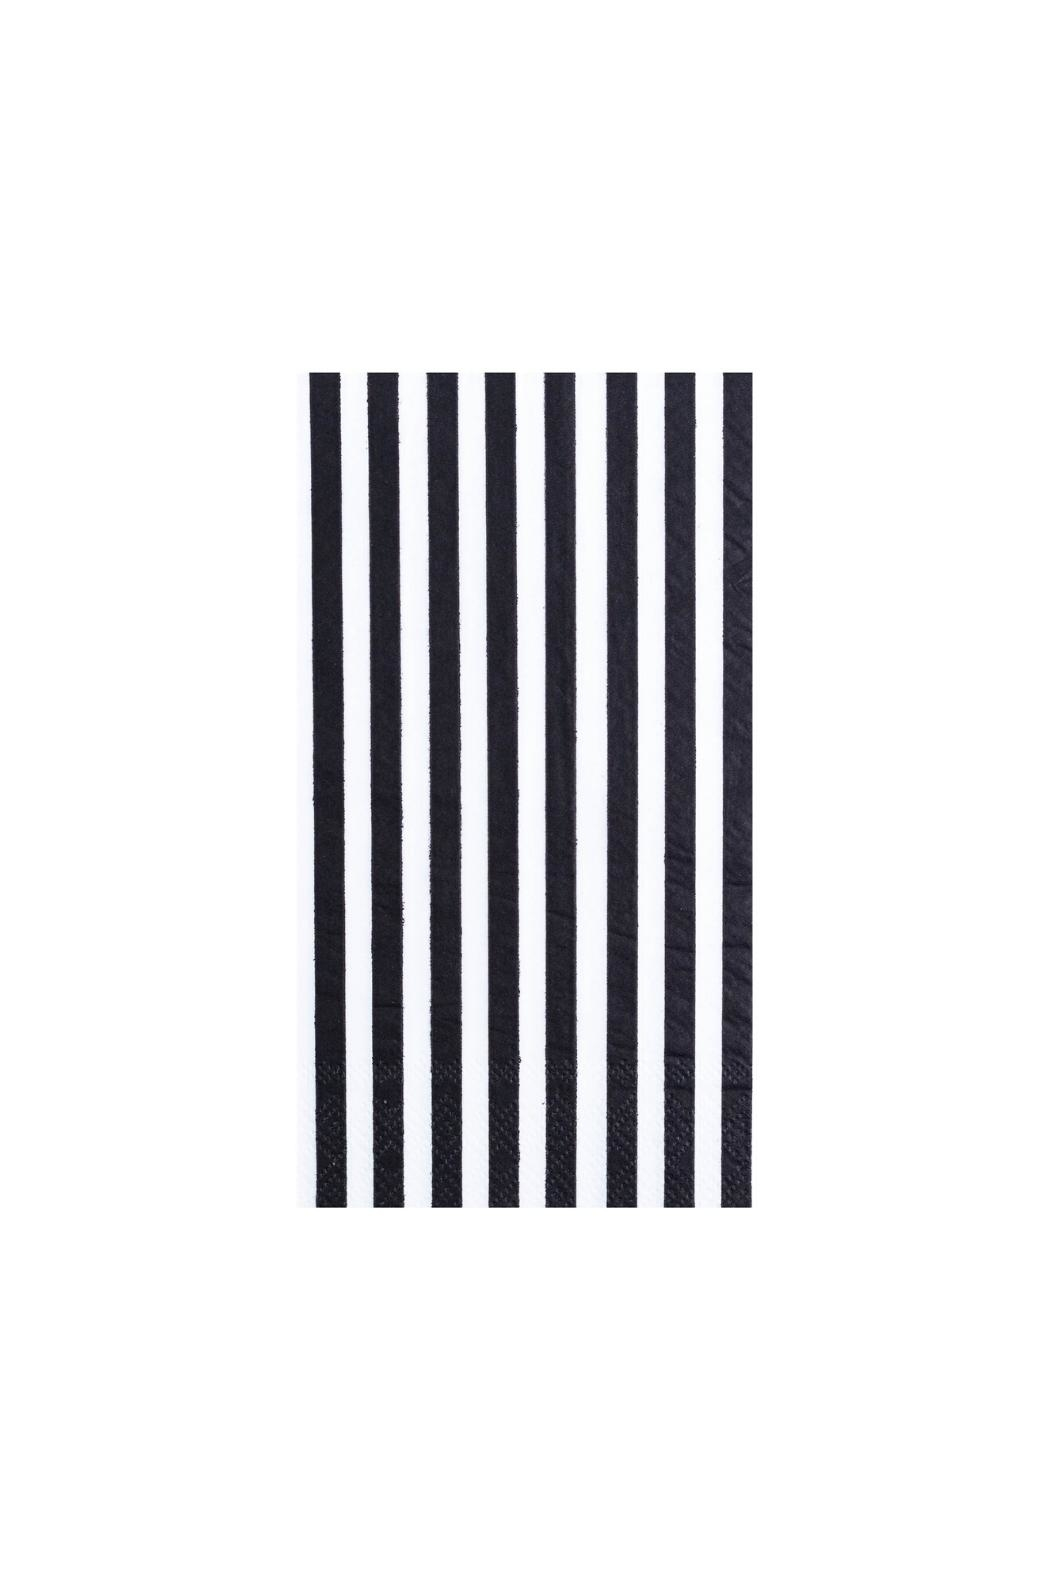 Jollity & Co Black & White Striped Guest Napkins - Main Image